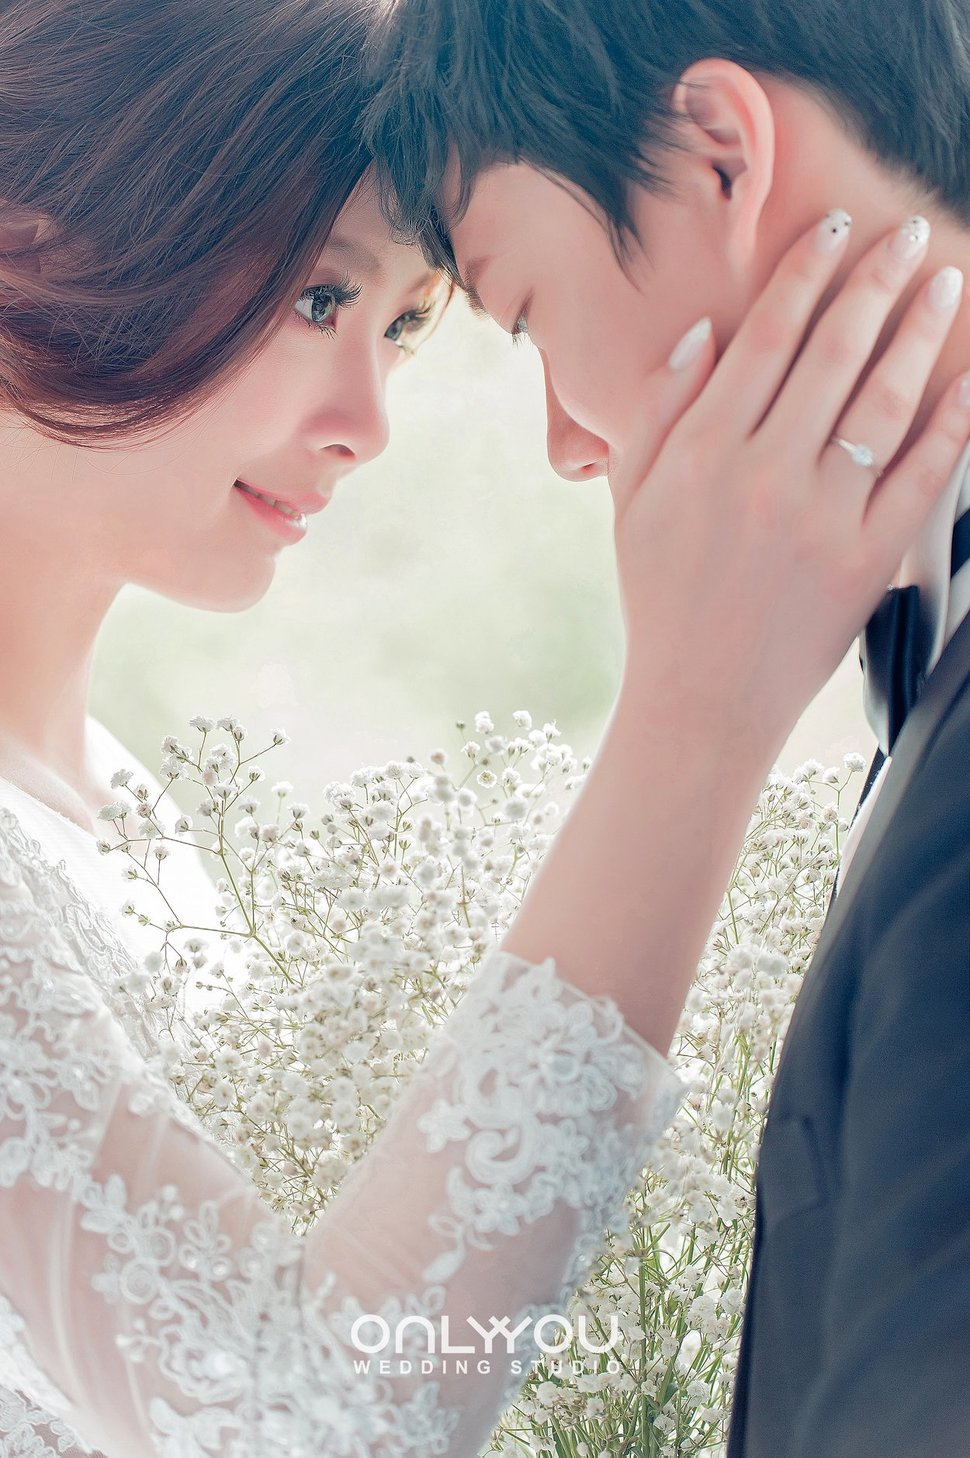 90242272_2794159470639681_4353322956521209856_o - ONLY YOU 唯你婚紗攝影《結婚吧》